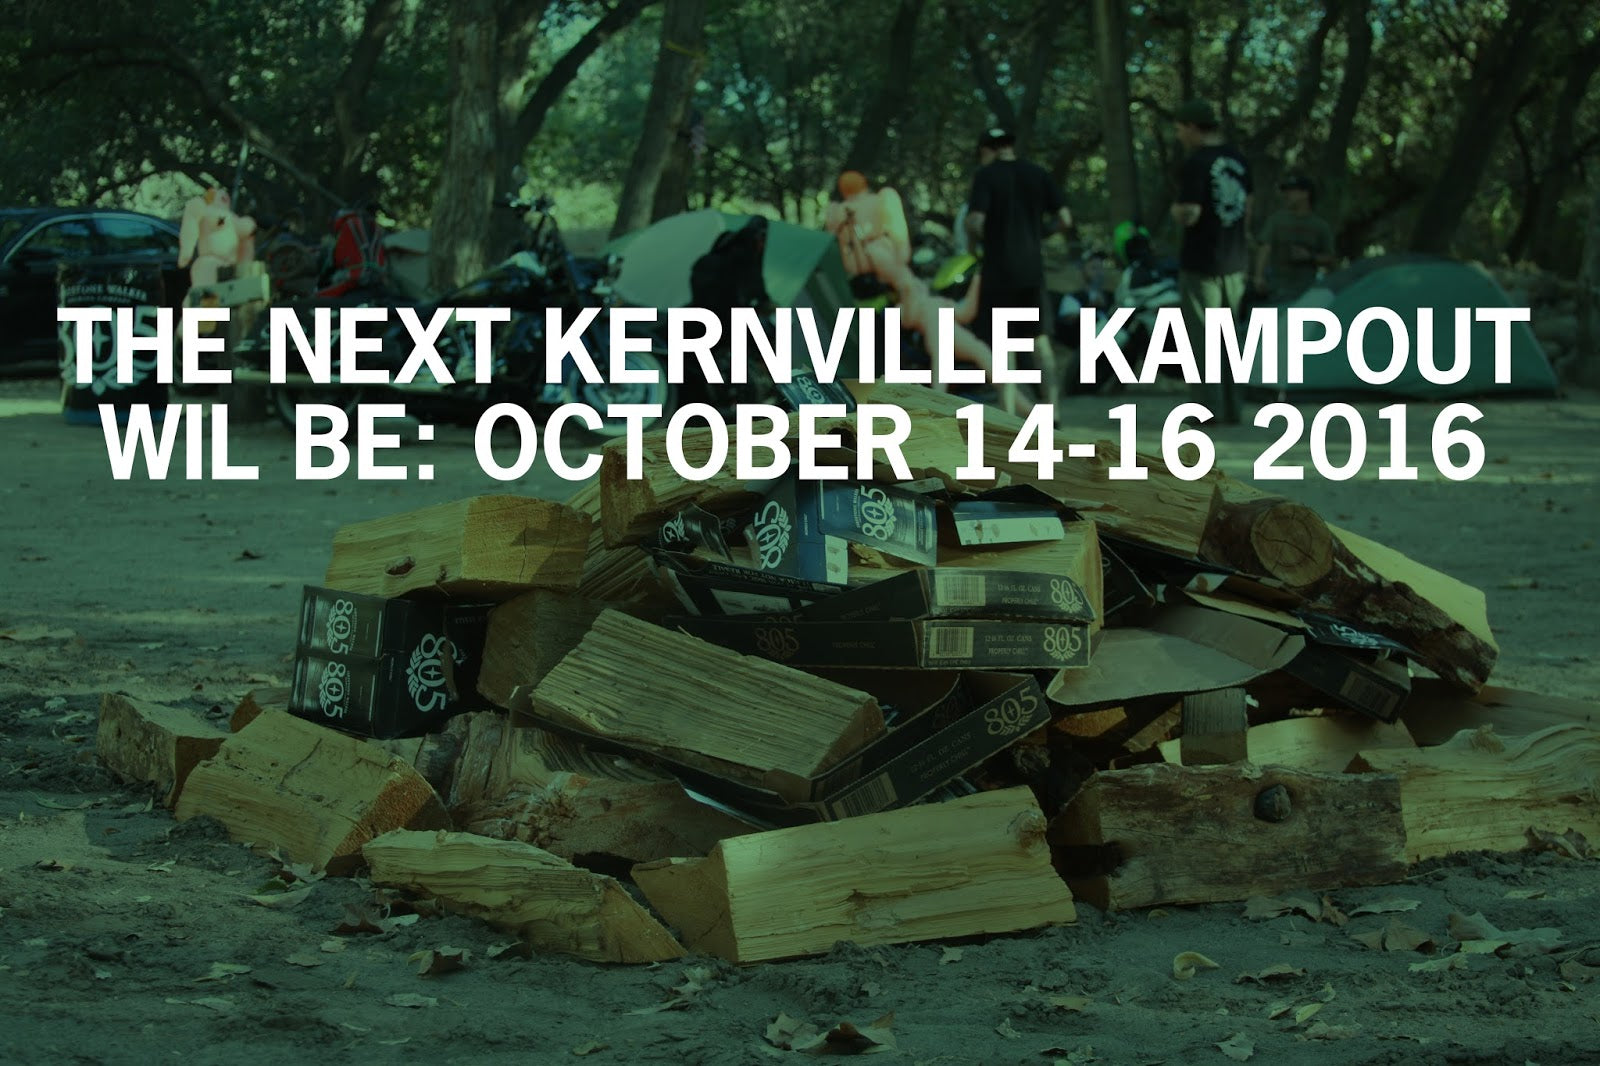 KERNVILLE KAMPOUT 2015 WRAP-UP & DATES FOR 2016